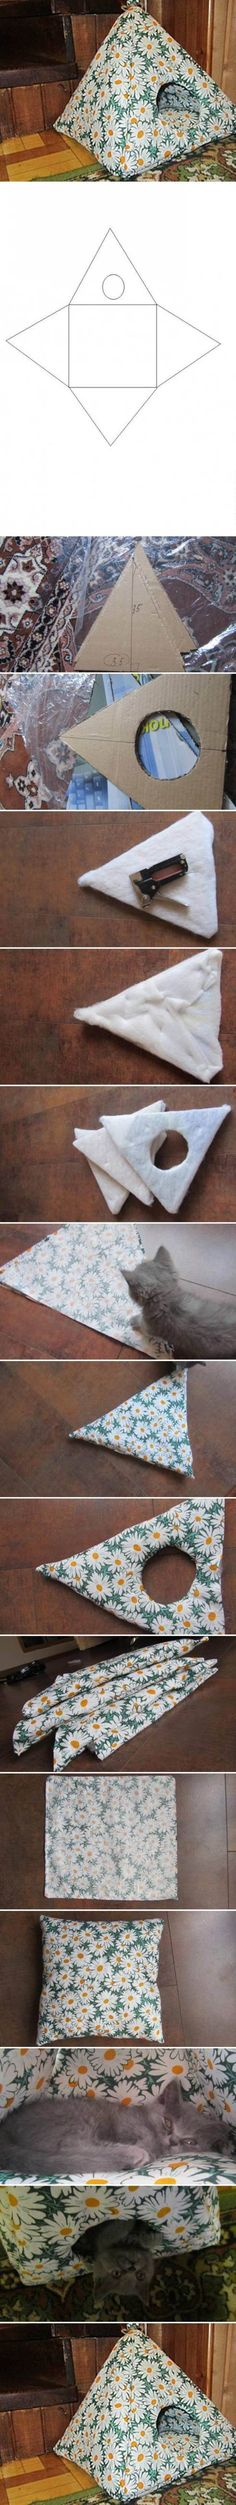 I found a cute idea for cat lovers, how to make a cat tent for your sweet kitty. All you need is a piece of cardboard, a canvas with a pattern you like (or you can ask the cat if she/he likes it&nb…